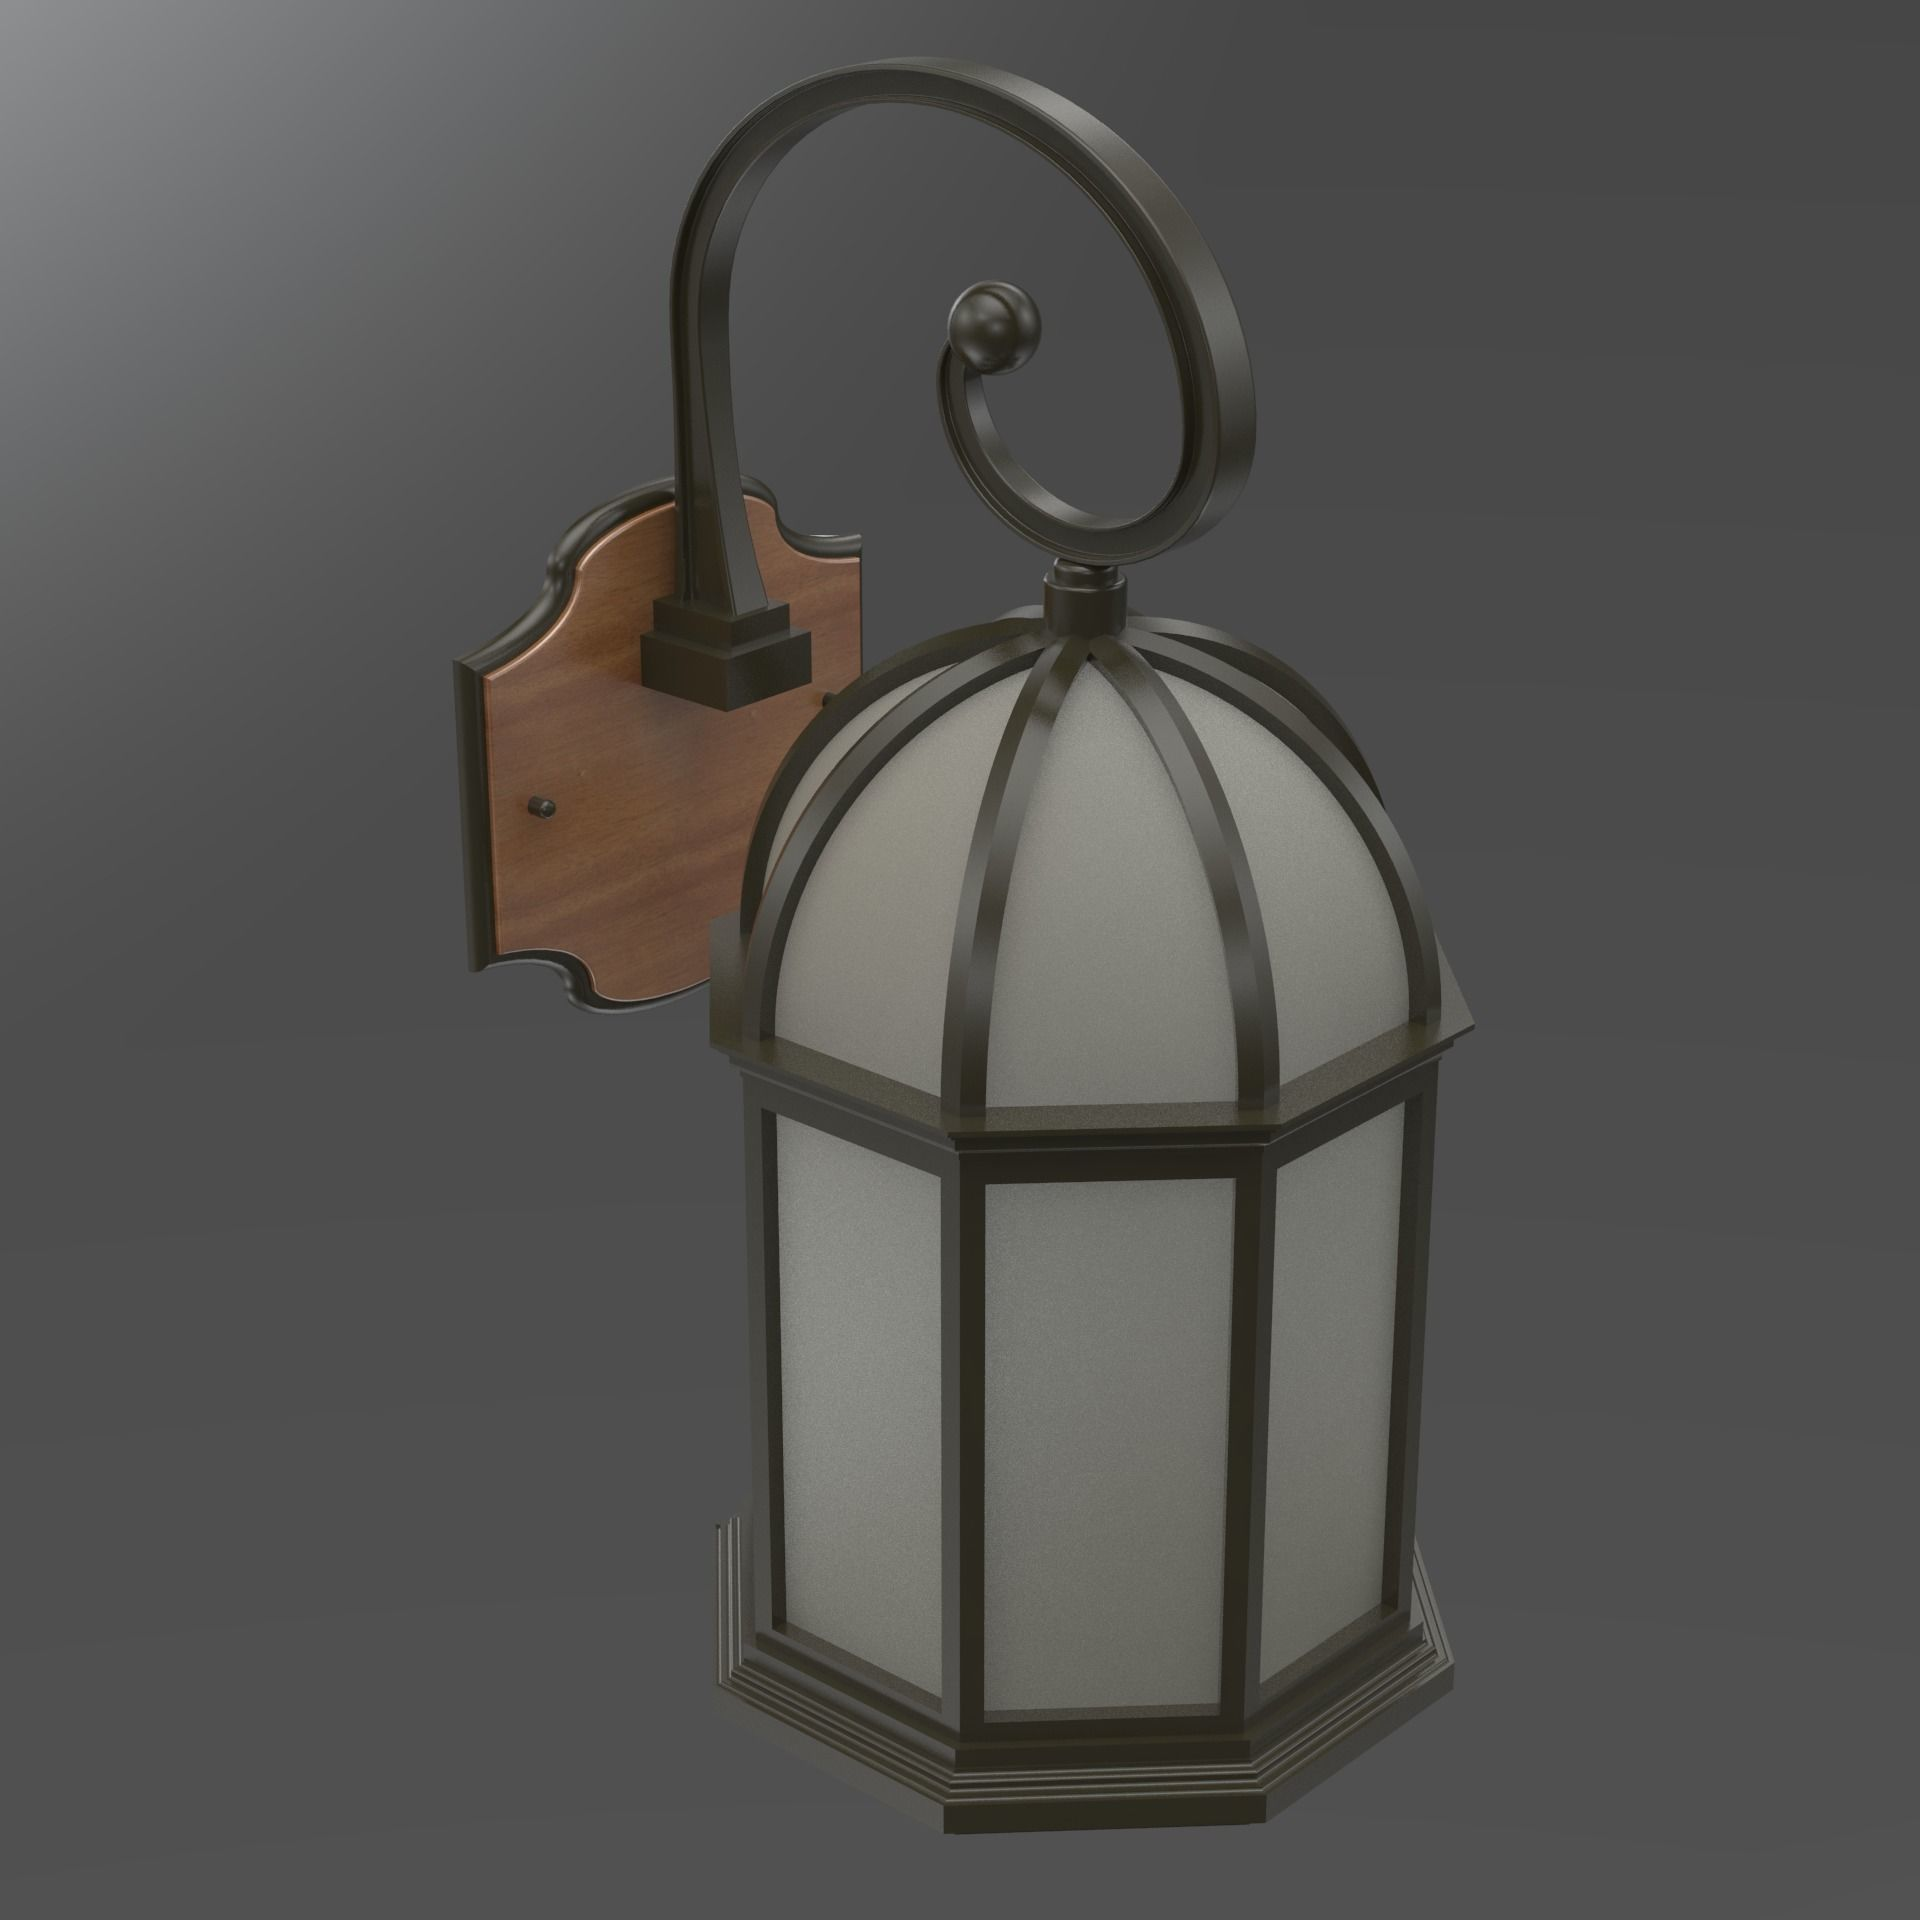 Lantern light fixtures lighting designs light fixture wall hung lantern 3d model cgtrader arubaitofo Choice Image